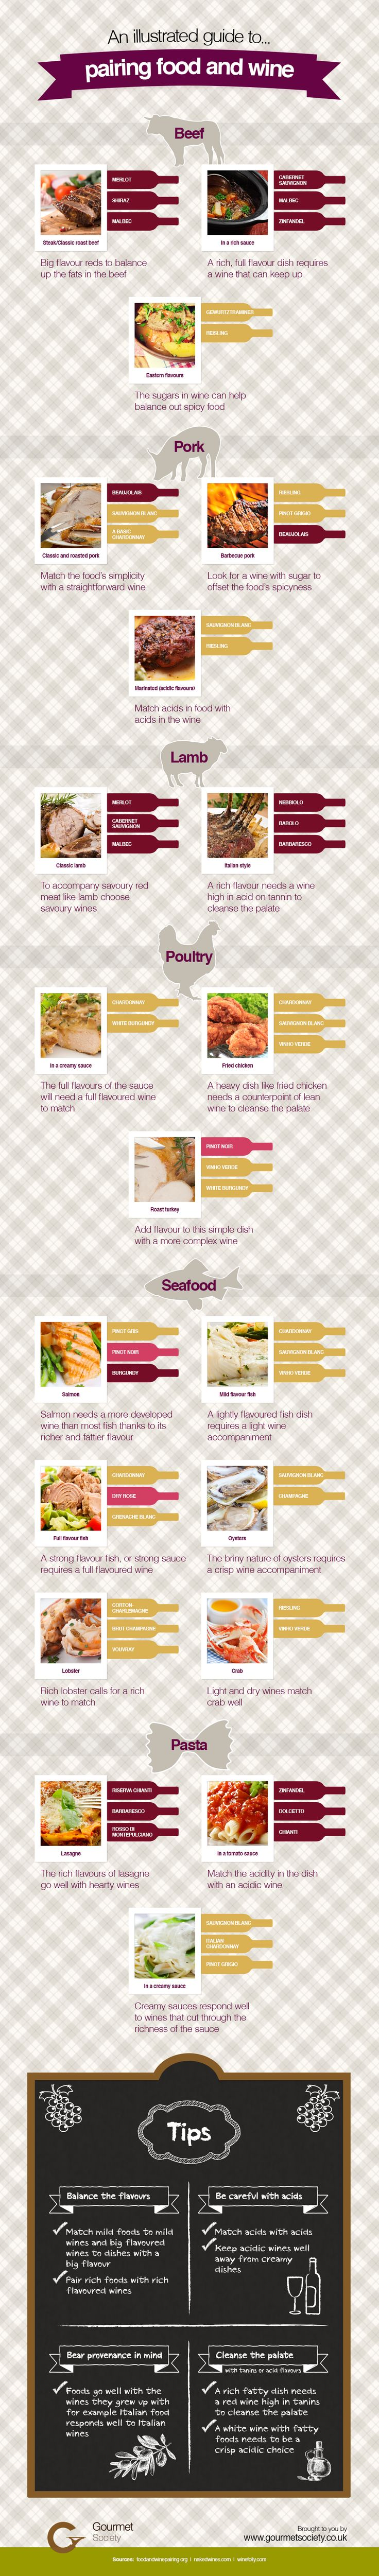 Not sure what wine goes with Salmon? An illustrated guide to pairing Wine and Food.